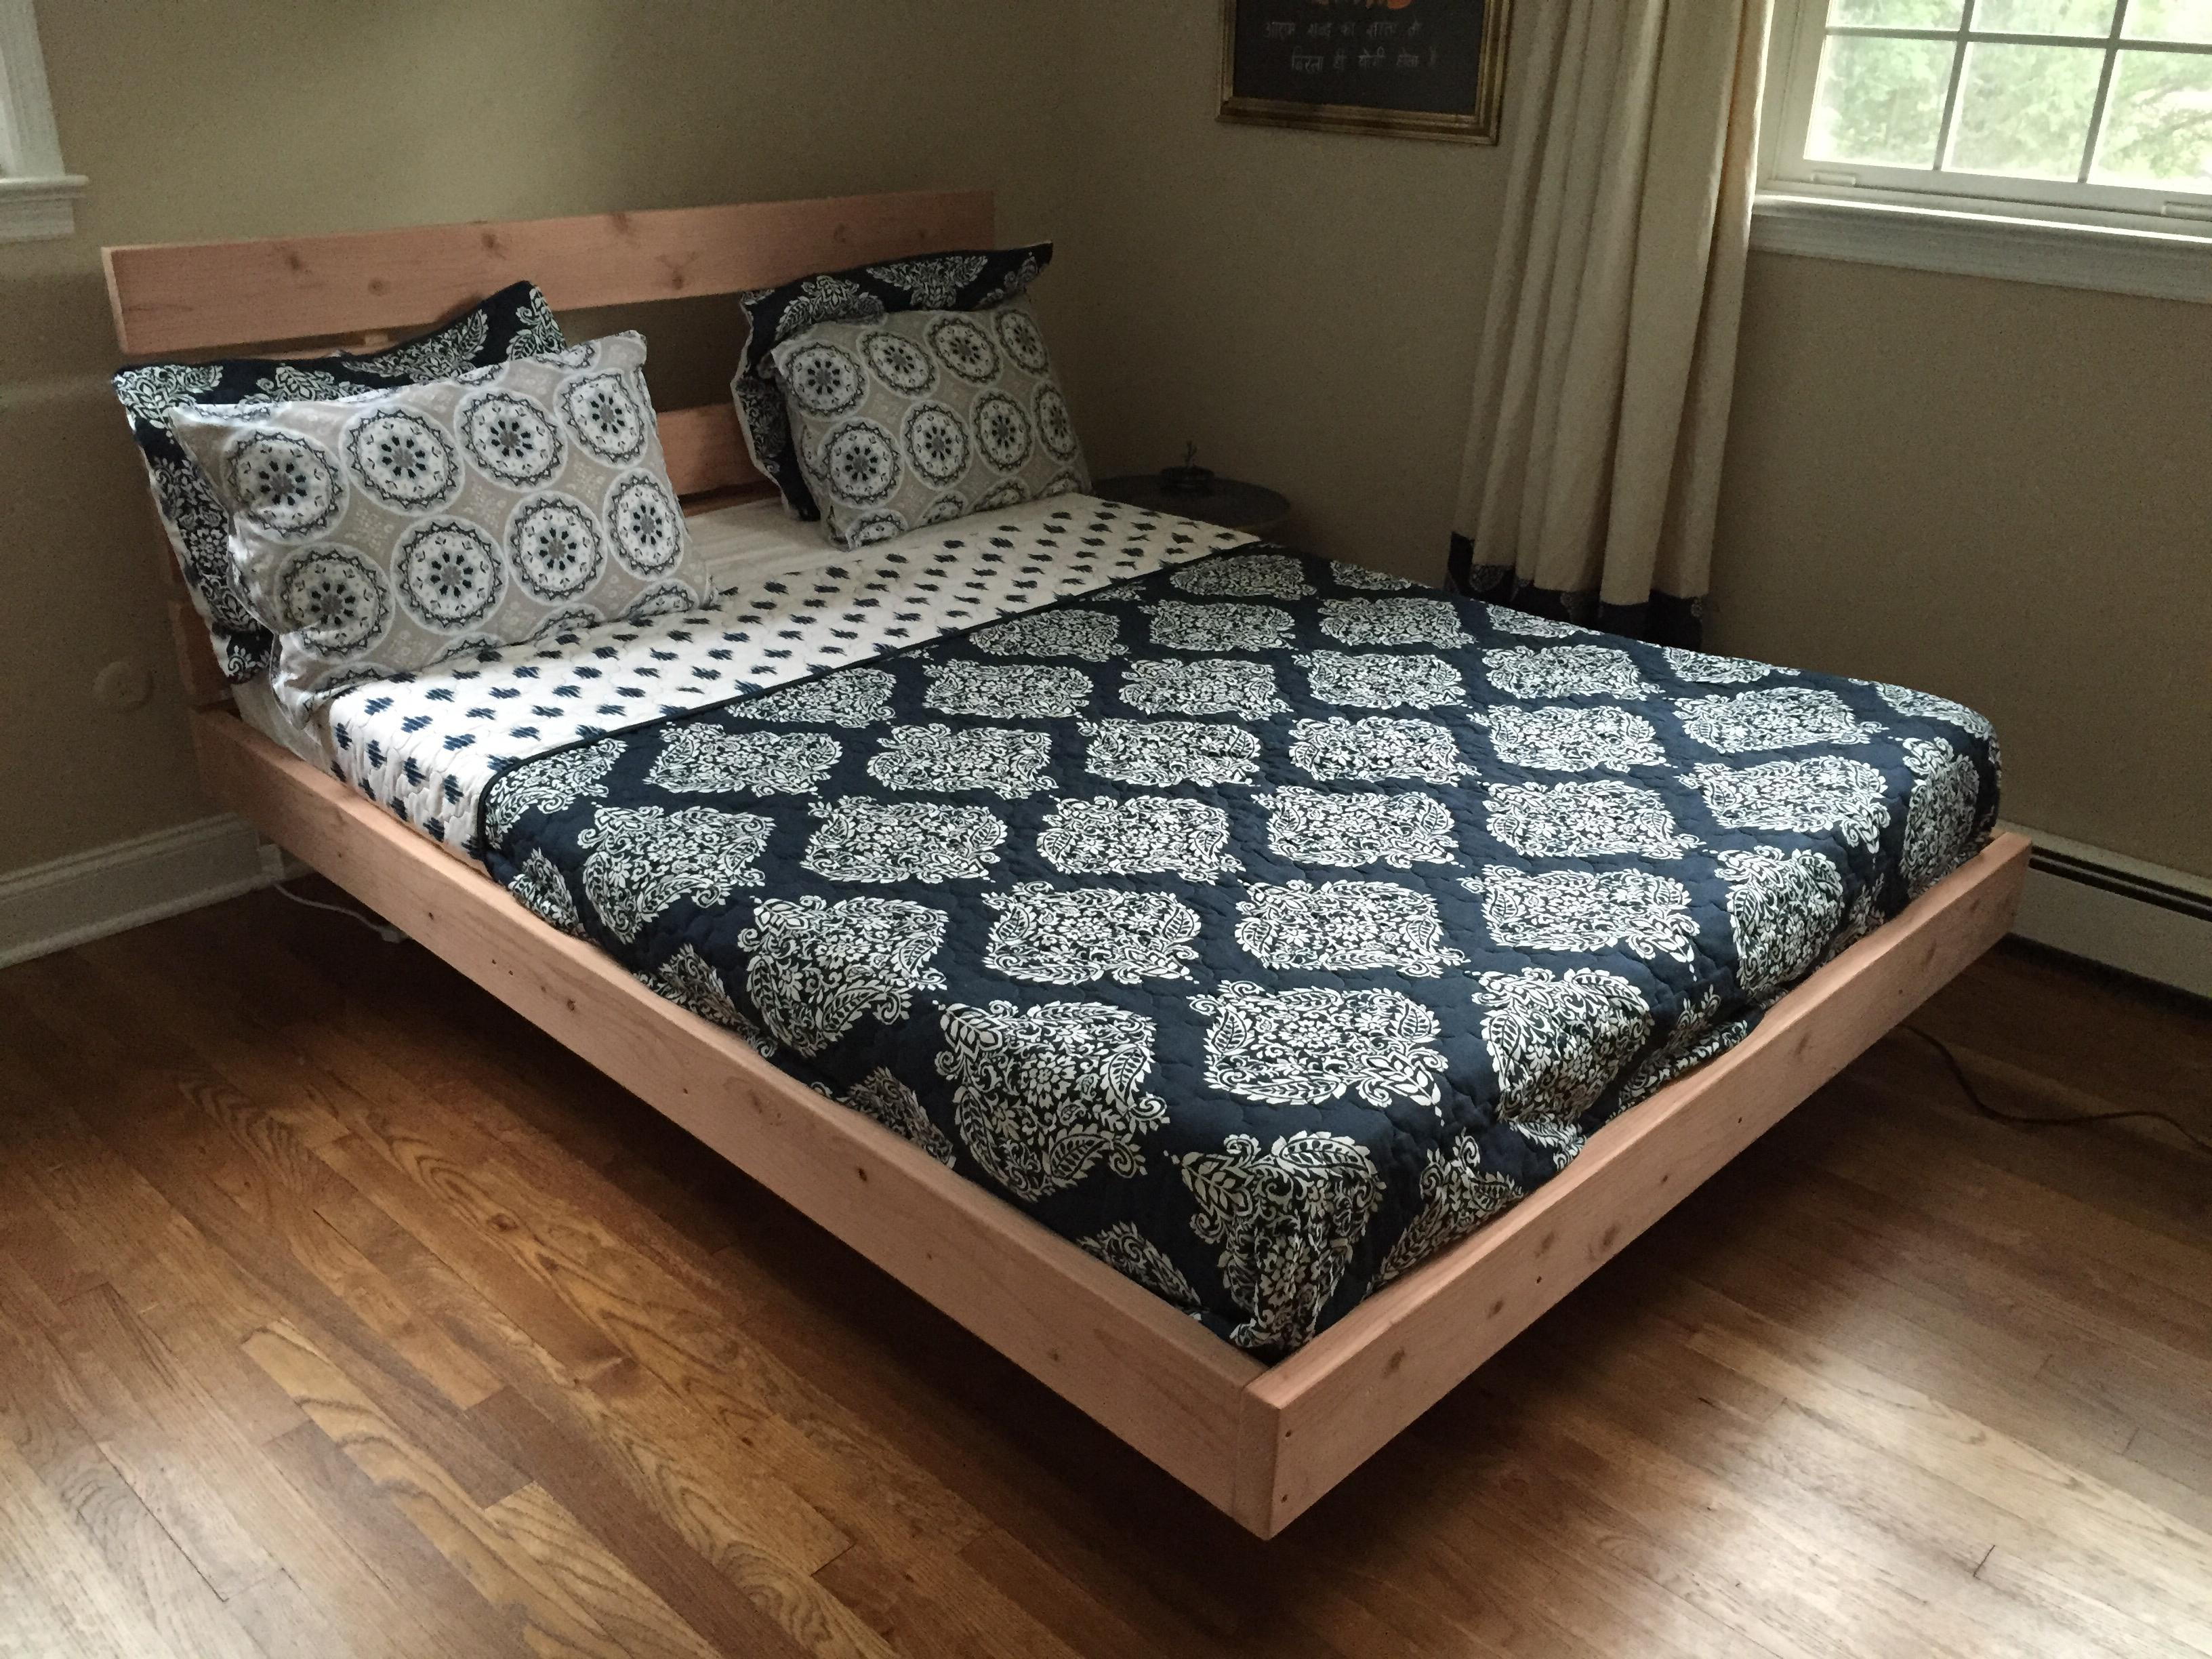 Drawn bedroom mattress DIY bed with detailed tools